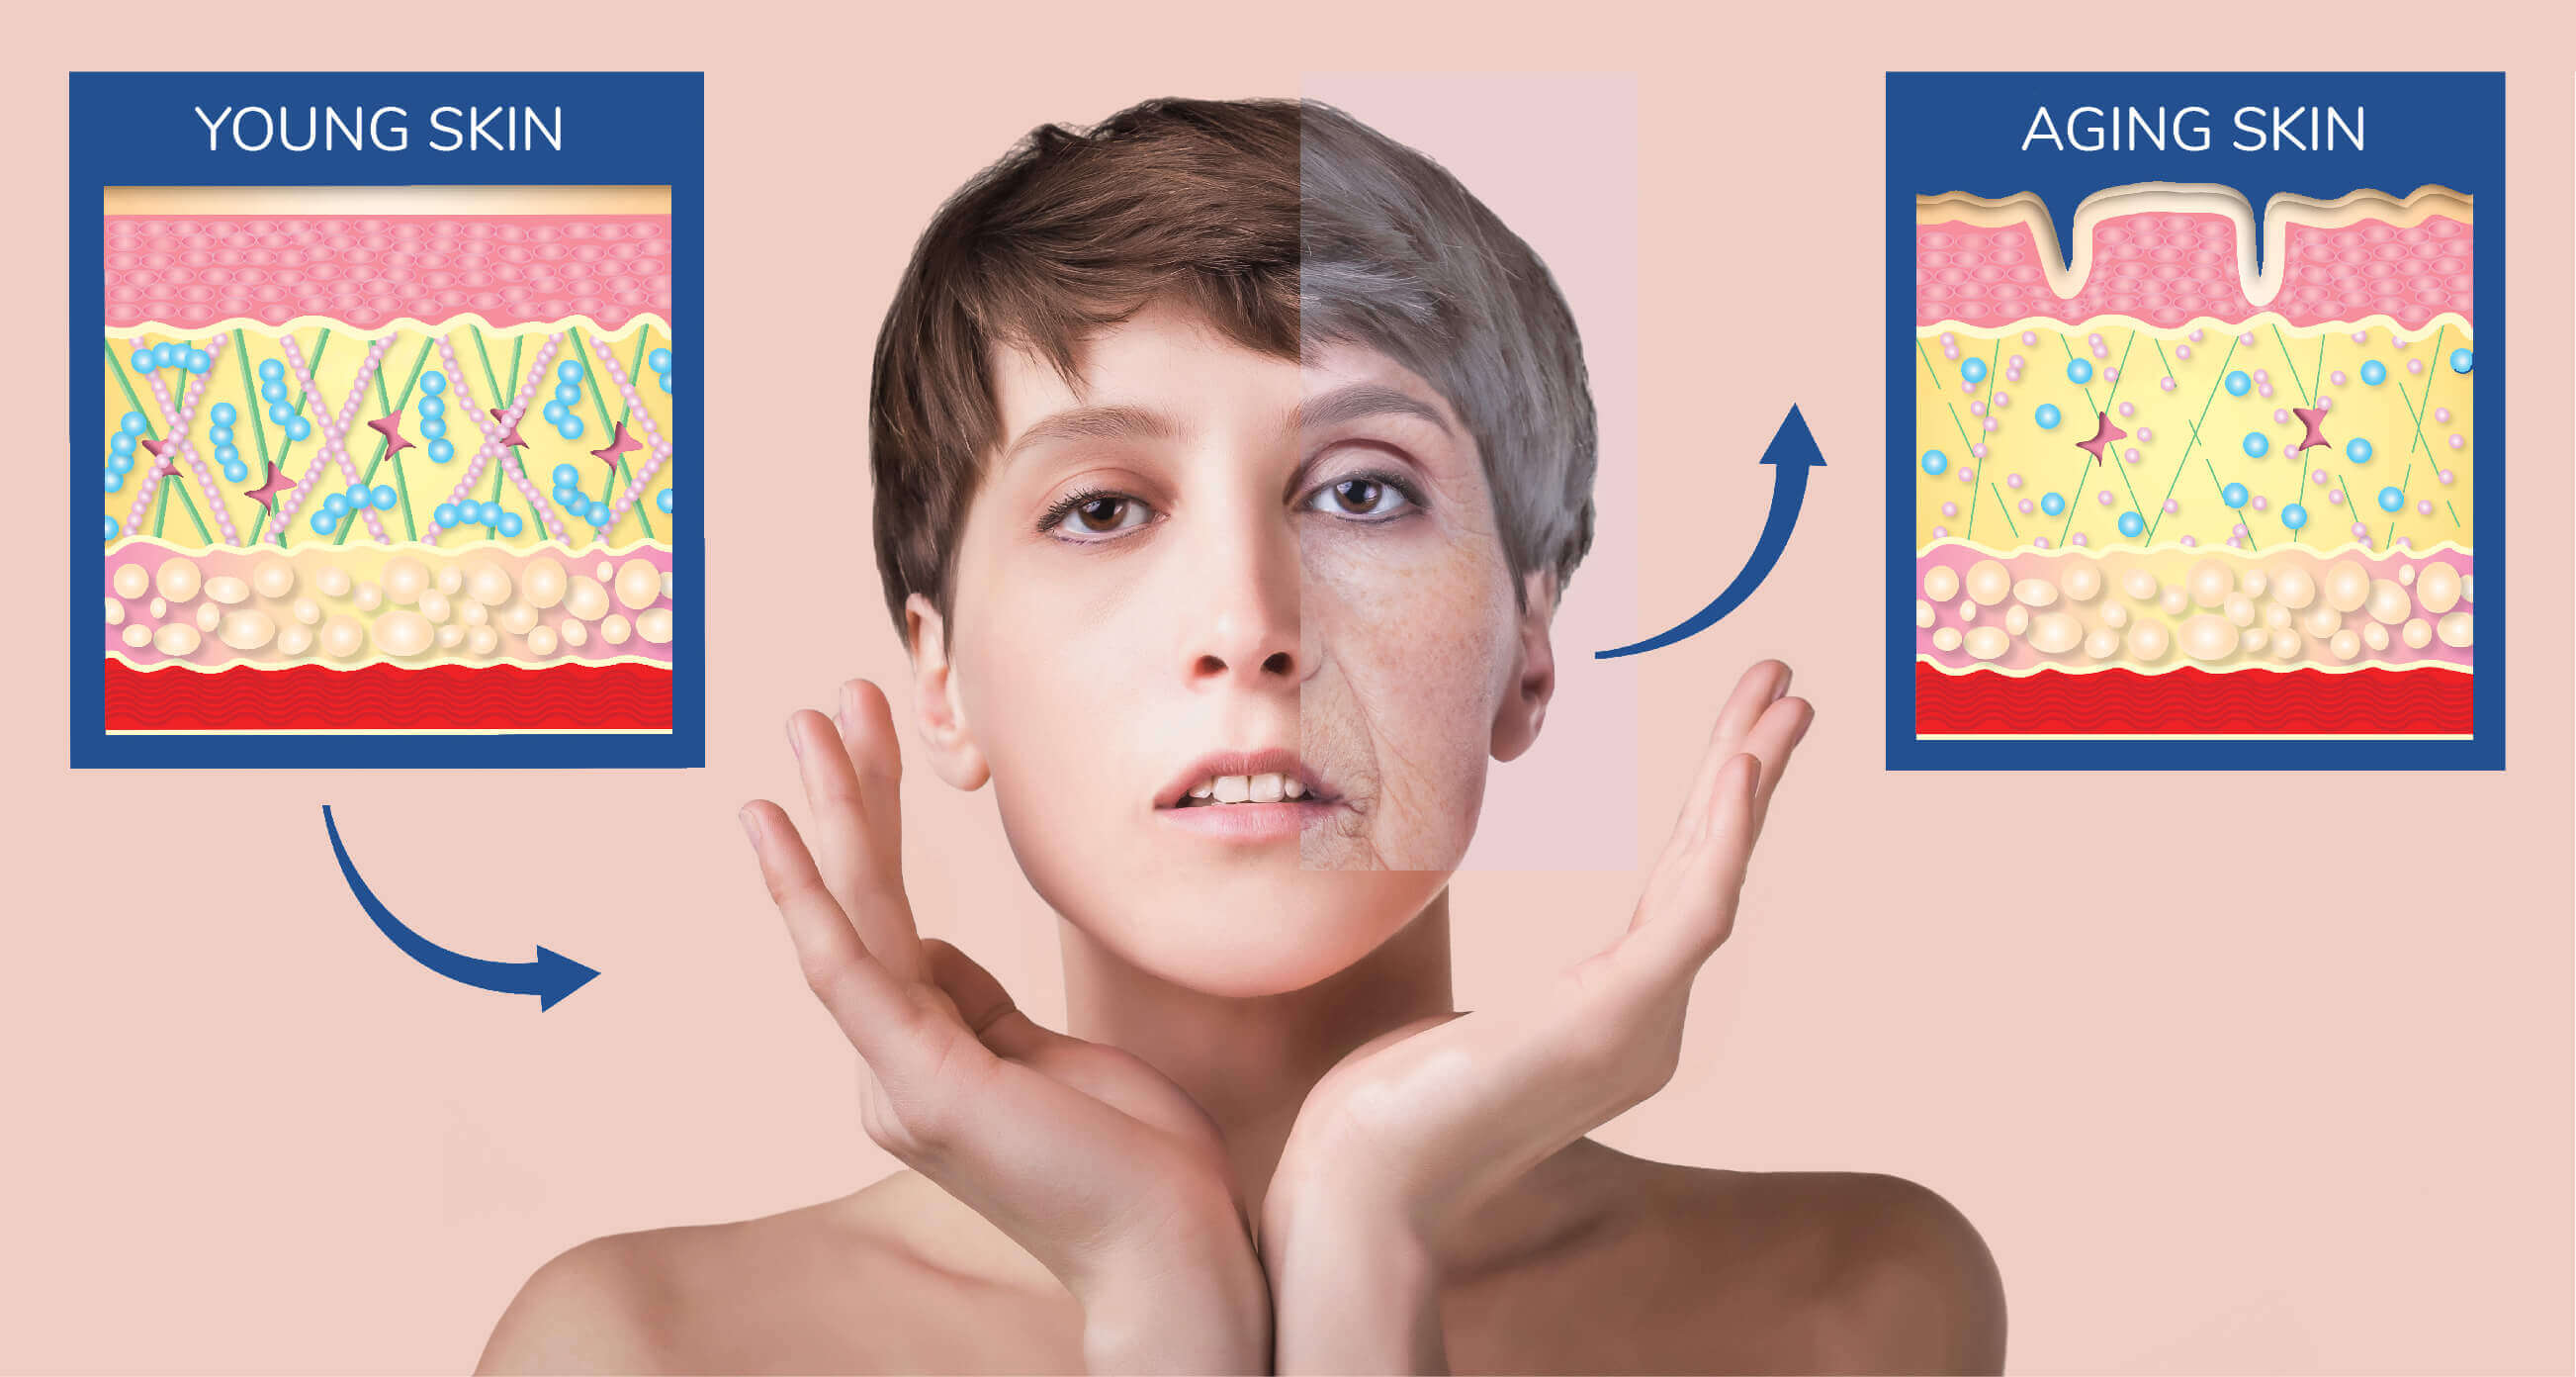 Illustration of young versus aging skin